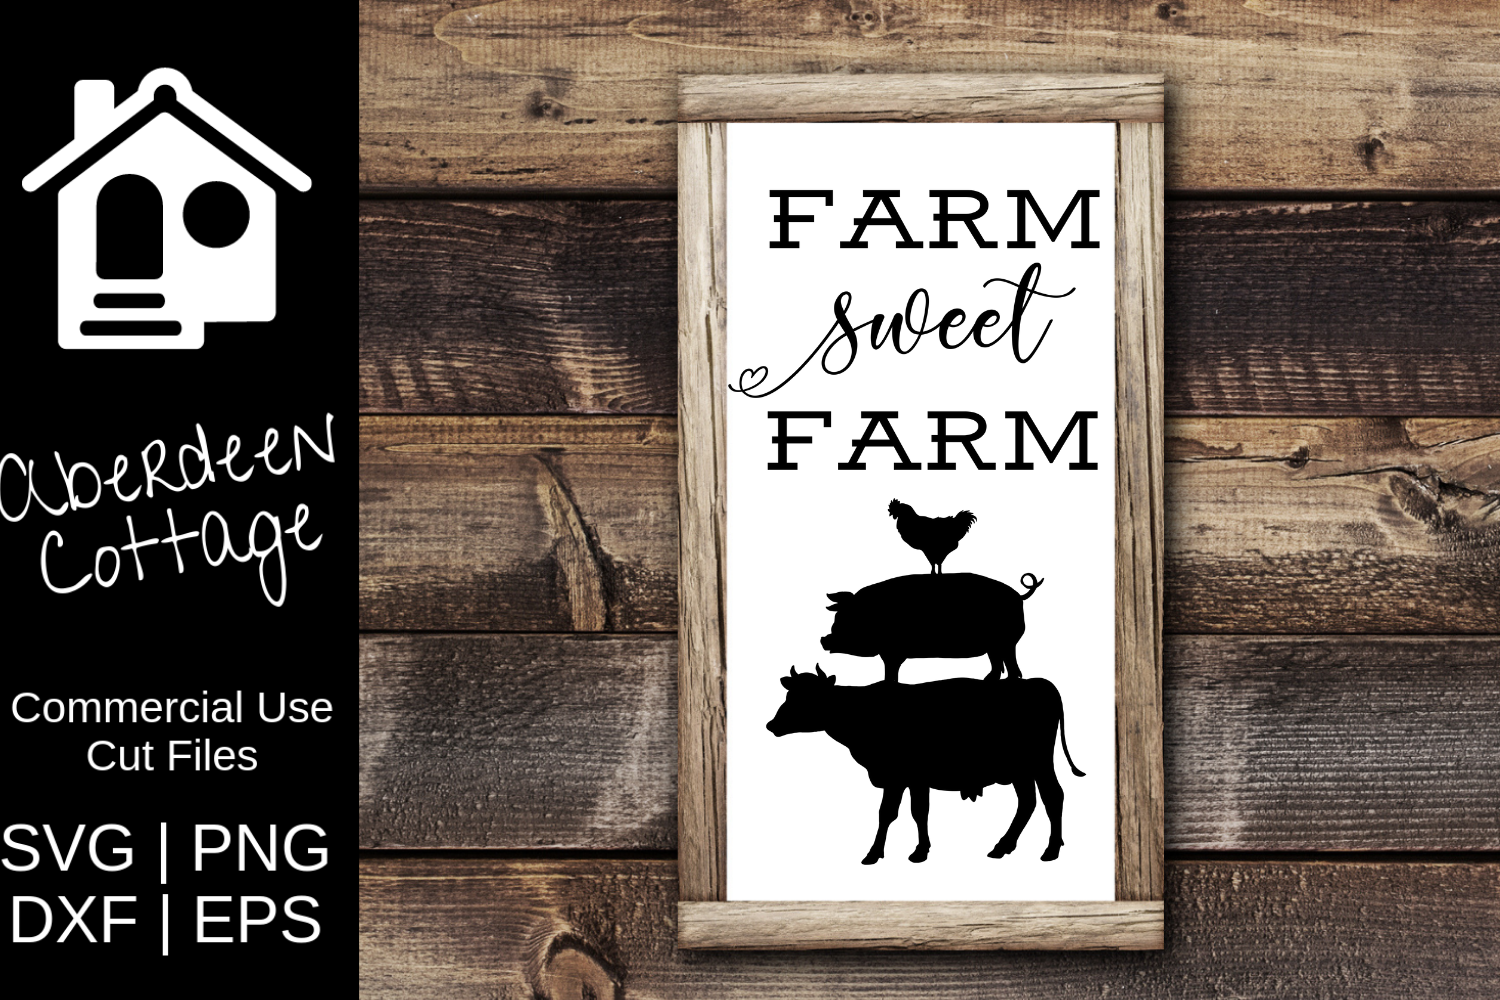 Farm Sweet Farm Design - SVG, PNG, DXF, EPS Formats example image 1